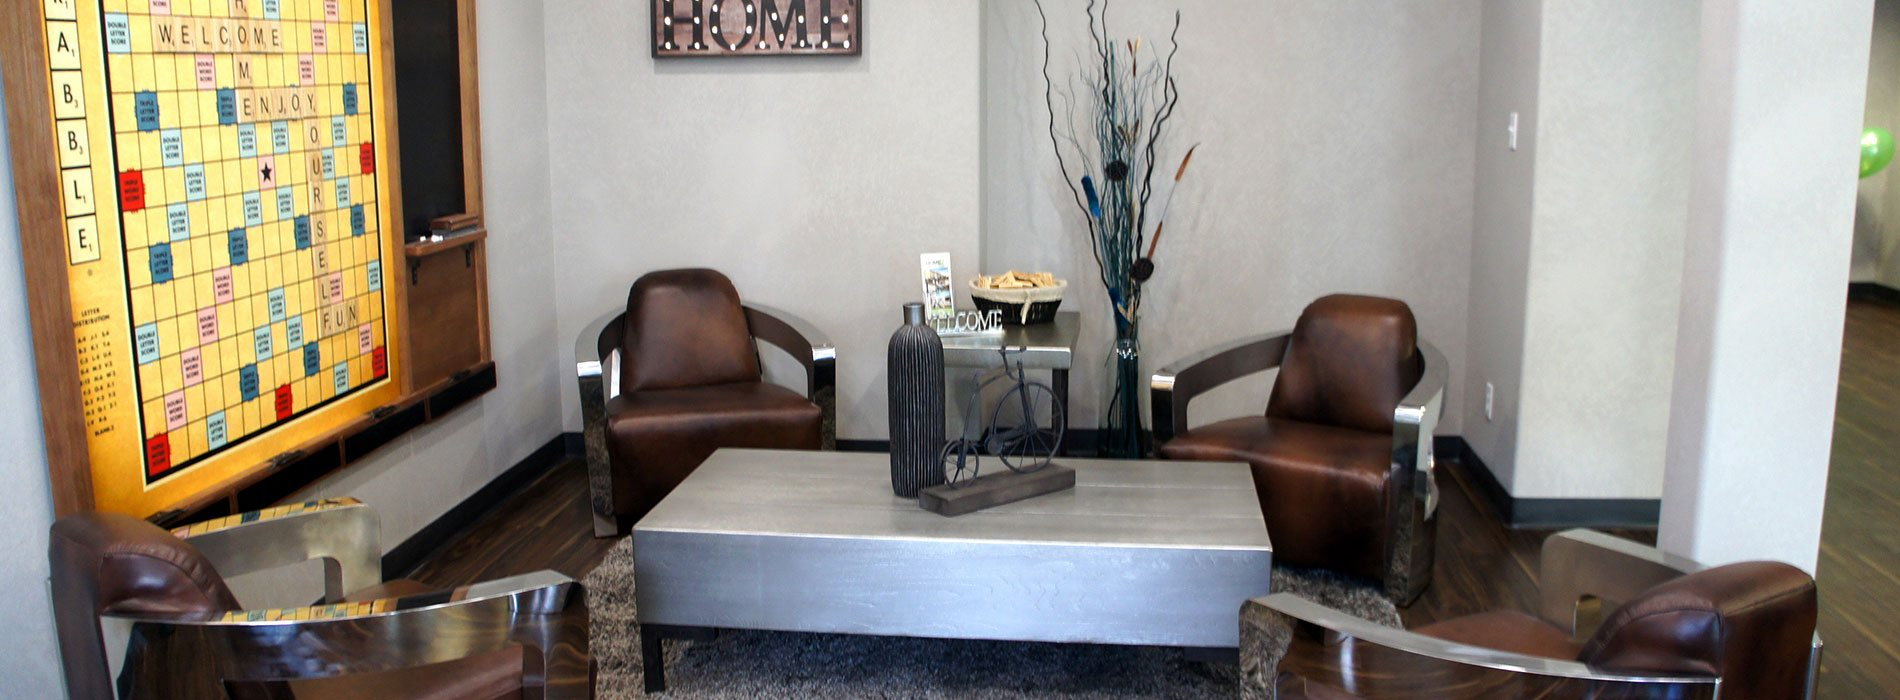 Four leather club chairs with thick metallic arms are matched with a solid metal top coffee table and side end table in the lounge and recreation space of d3h Home Inn Express in Medicine Hat, Alberta.  A large Scrabble board game is mounted against light gray walls with an attached blackboard for score keeping.